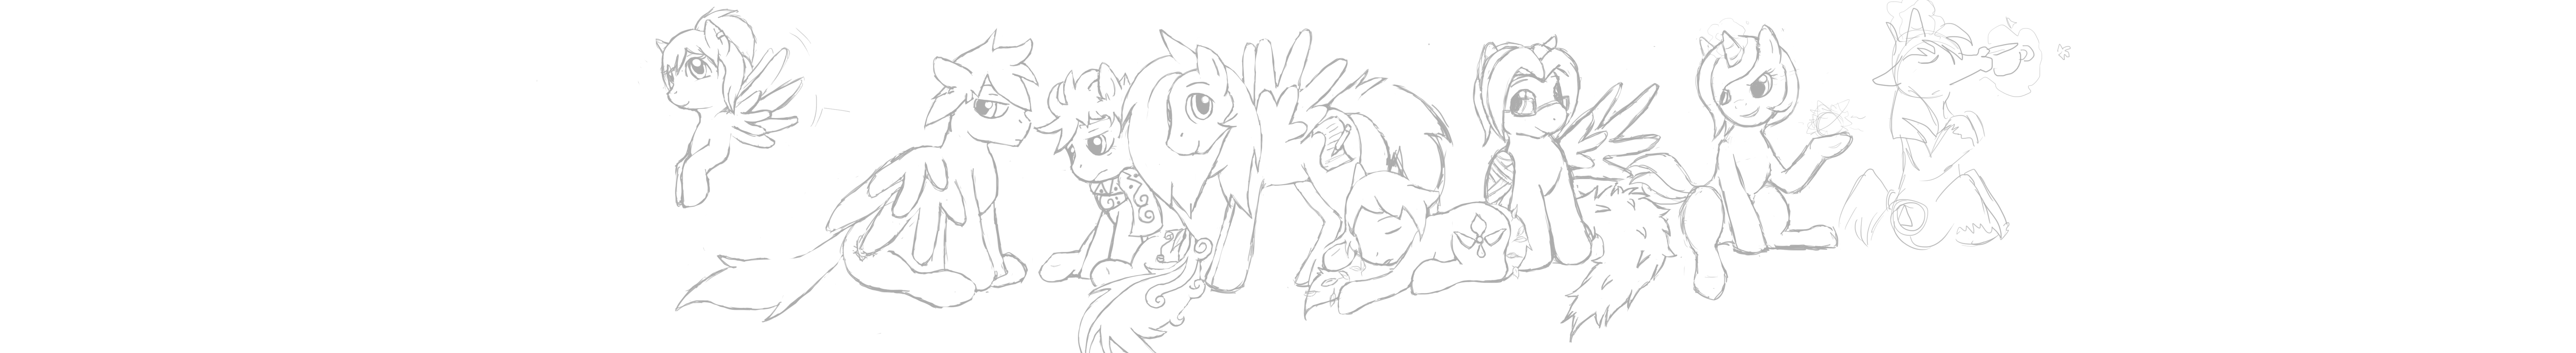 WIP MLP online group pic by SummersBlossom